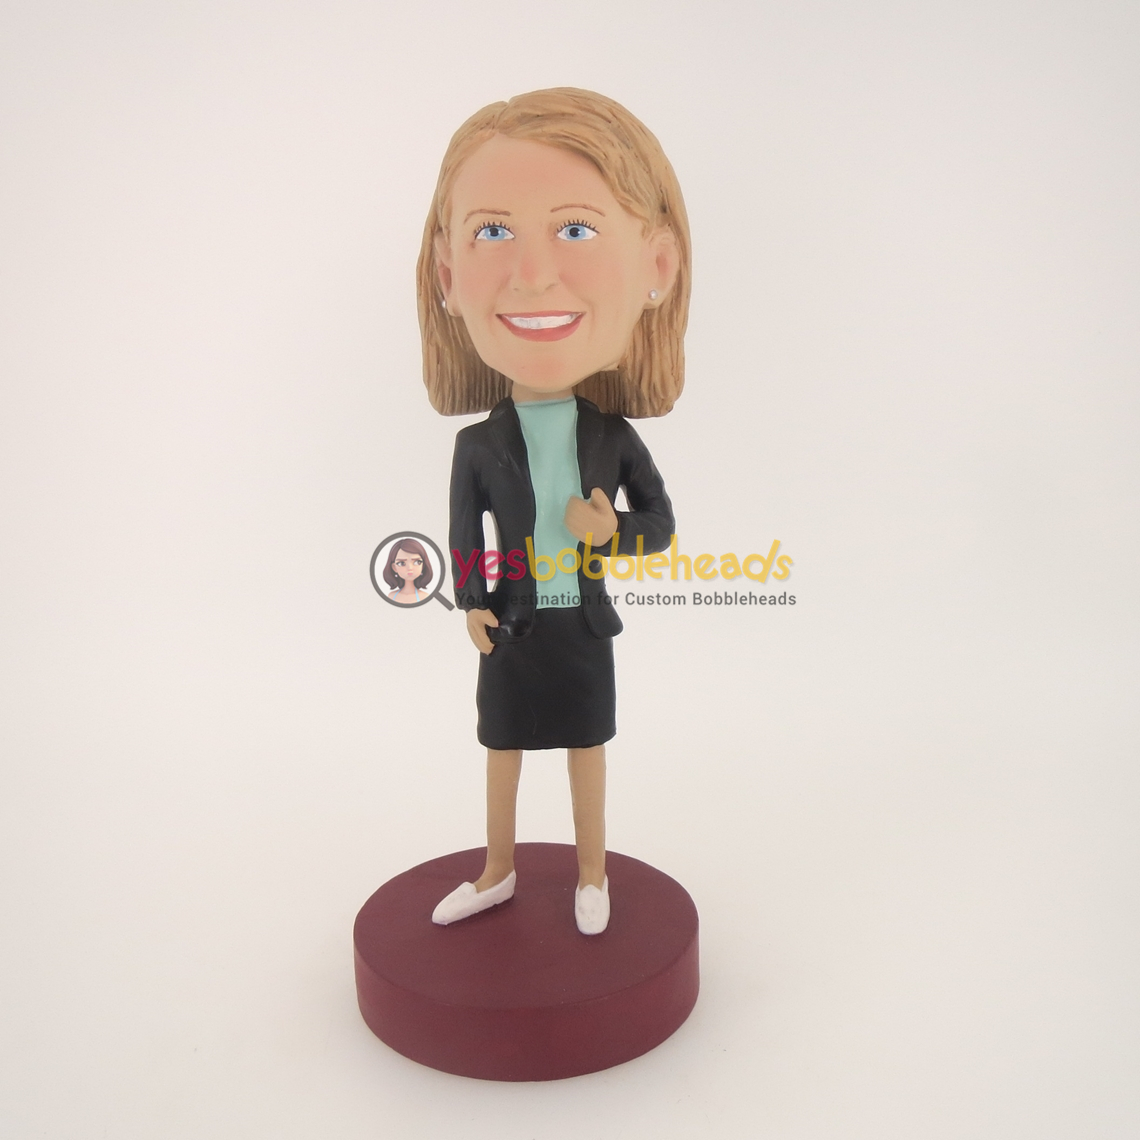 Picture of Custom Bobblehead Doll: Black Jacket Woman